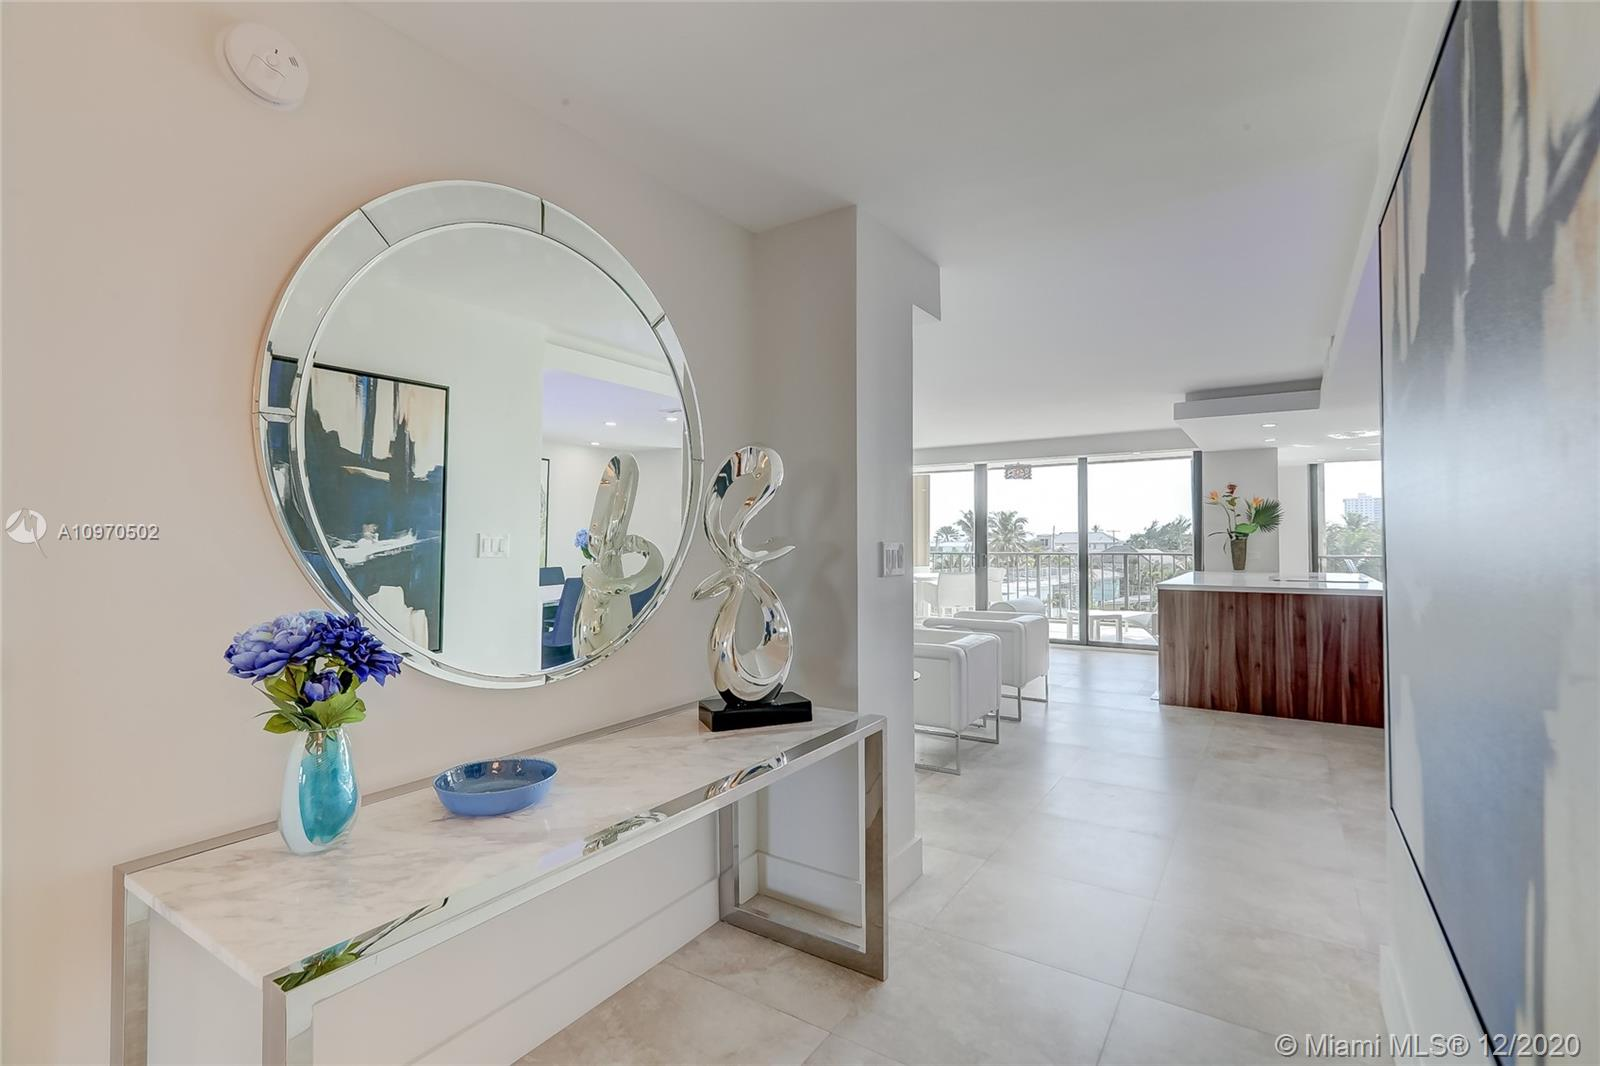 Nothing has been overlooking in this remodeled 1500sf 2 bed/ 2 bath condo along Ft. Lauderdale Beach. From the second you walk into this condo off your elevator foyer, you can see the attention to detail. This professionally decorated condo has an open floorplan with large ceramic tile throughout. Modern kitchen with quartz countertops, under cabinet lighting and all the top stainless steel appliances. Dropped ceilings with recessed lighting. Custom glass wine shelving. Both bathrooms have custom fixtures and walk-in showers with frameless glass doors.  Large balcony with ocean views. Laundry room w/ storage. Impact glass windows and sliding doors. Gated community with doorman. Beach pavilion offers pool, gym, bbq and more.